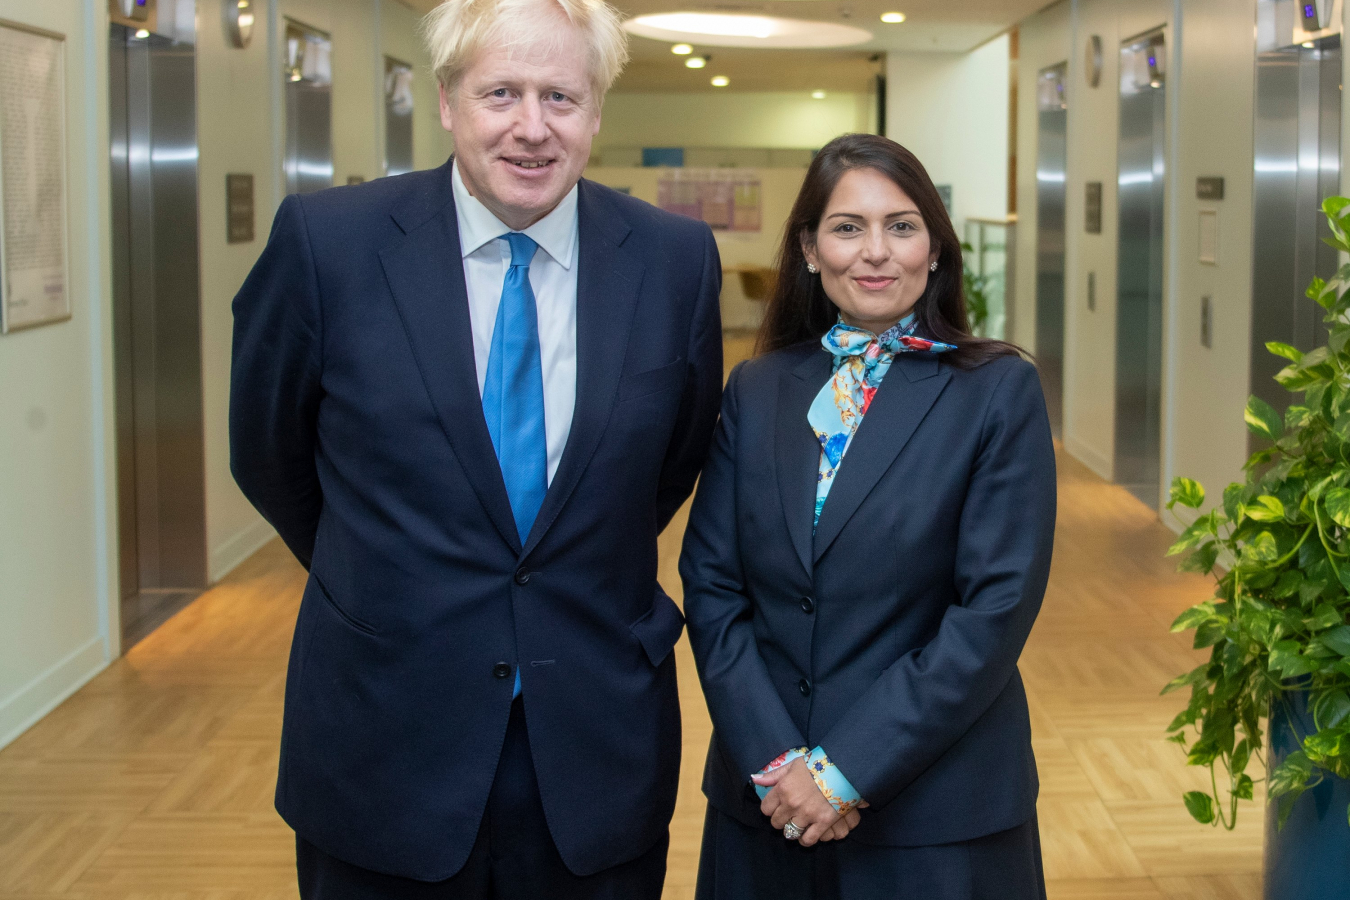 Prime Minister Boris Johnson and Home Secretary Priti Patel